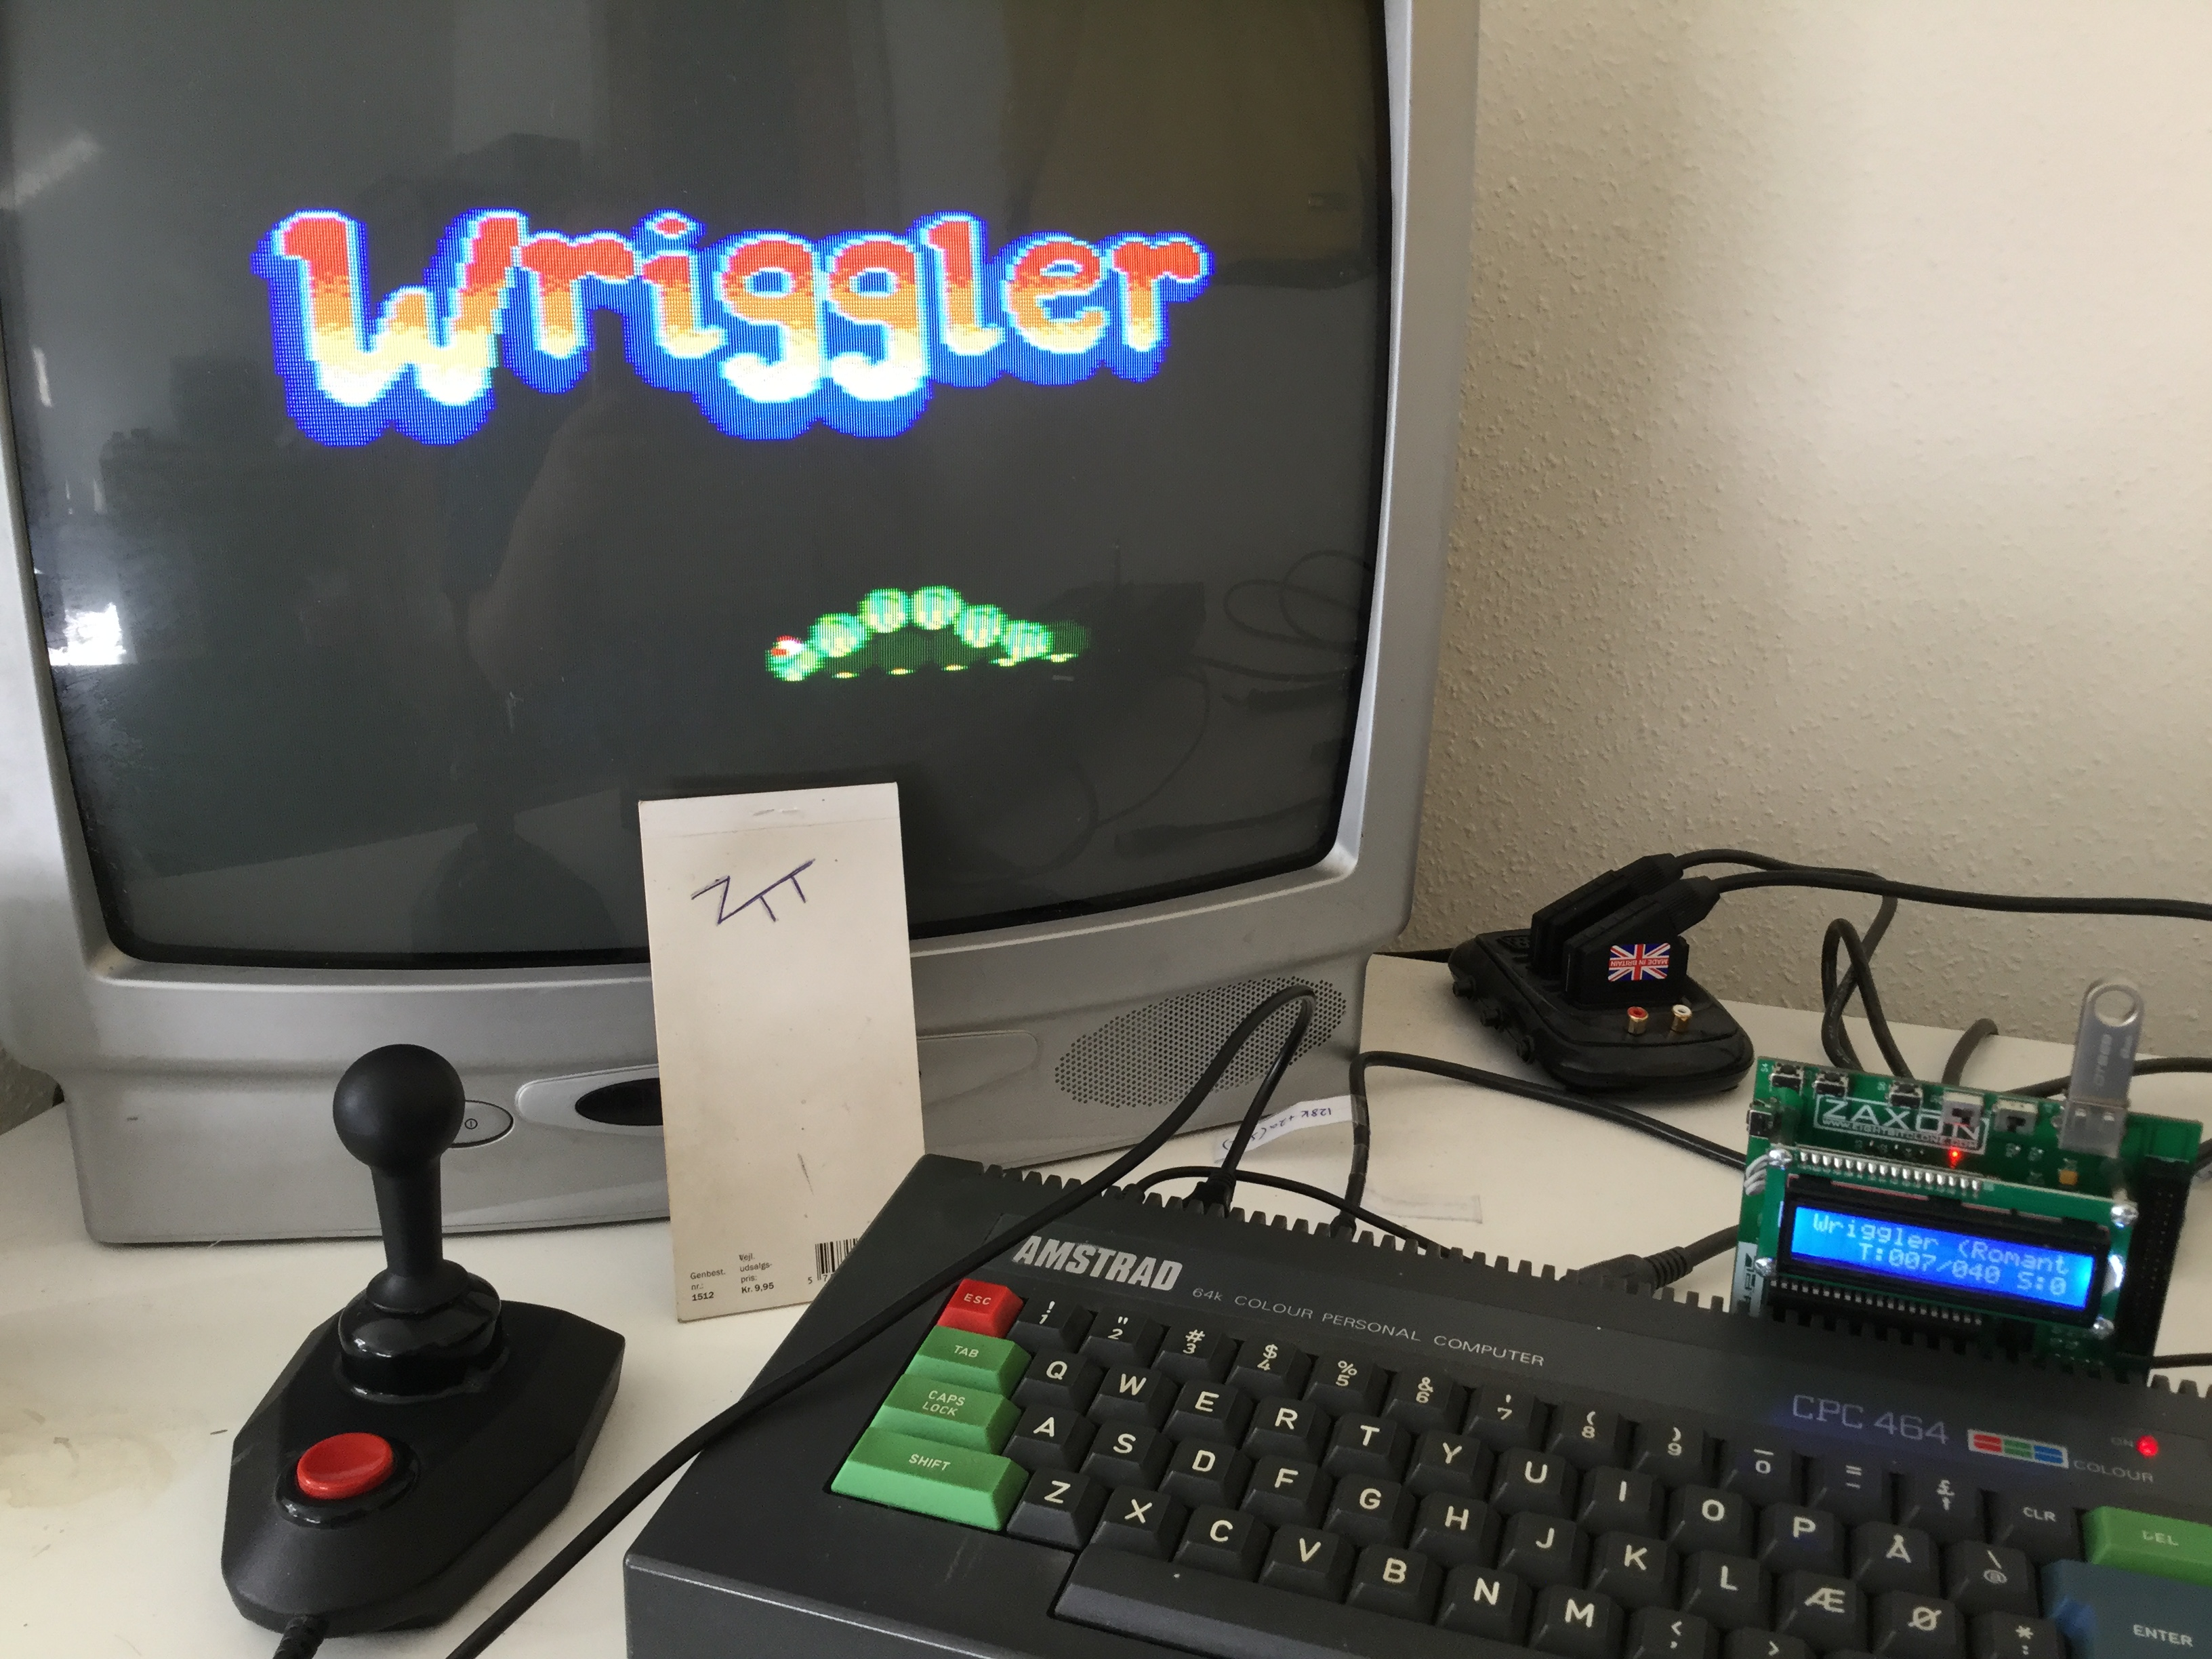 Frankie: Wriggler [Blaby Computer Games] (Amstrad CPC) 2,504 points on 2017-04-09 02:30:55